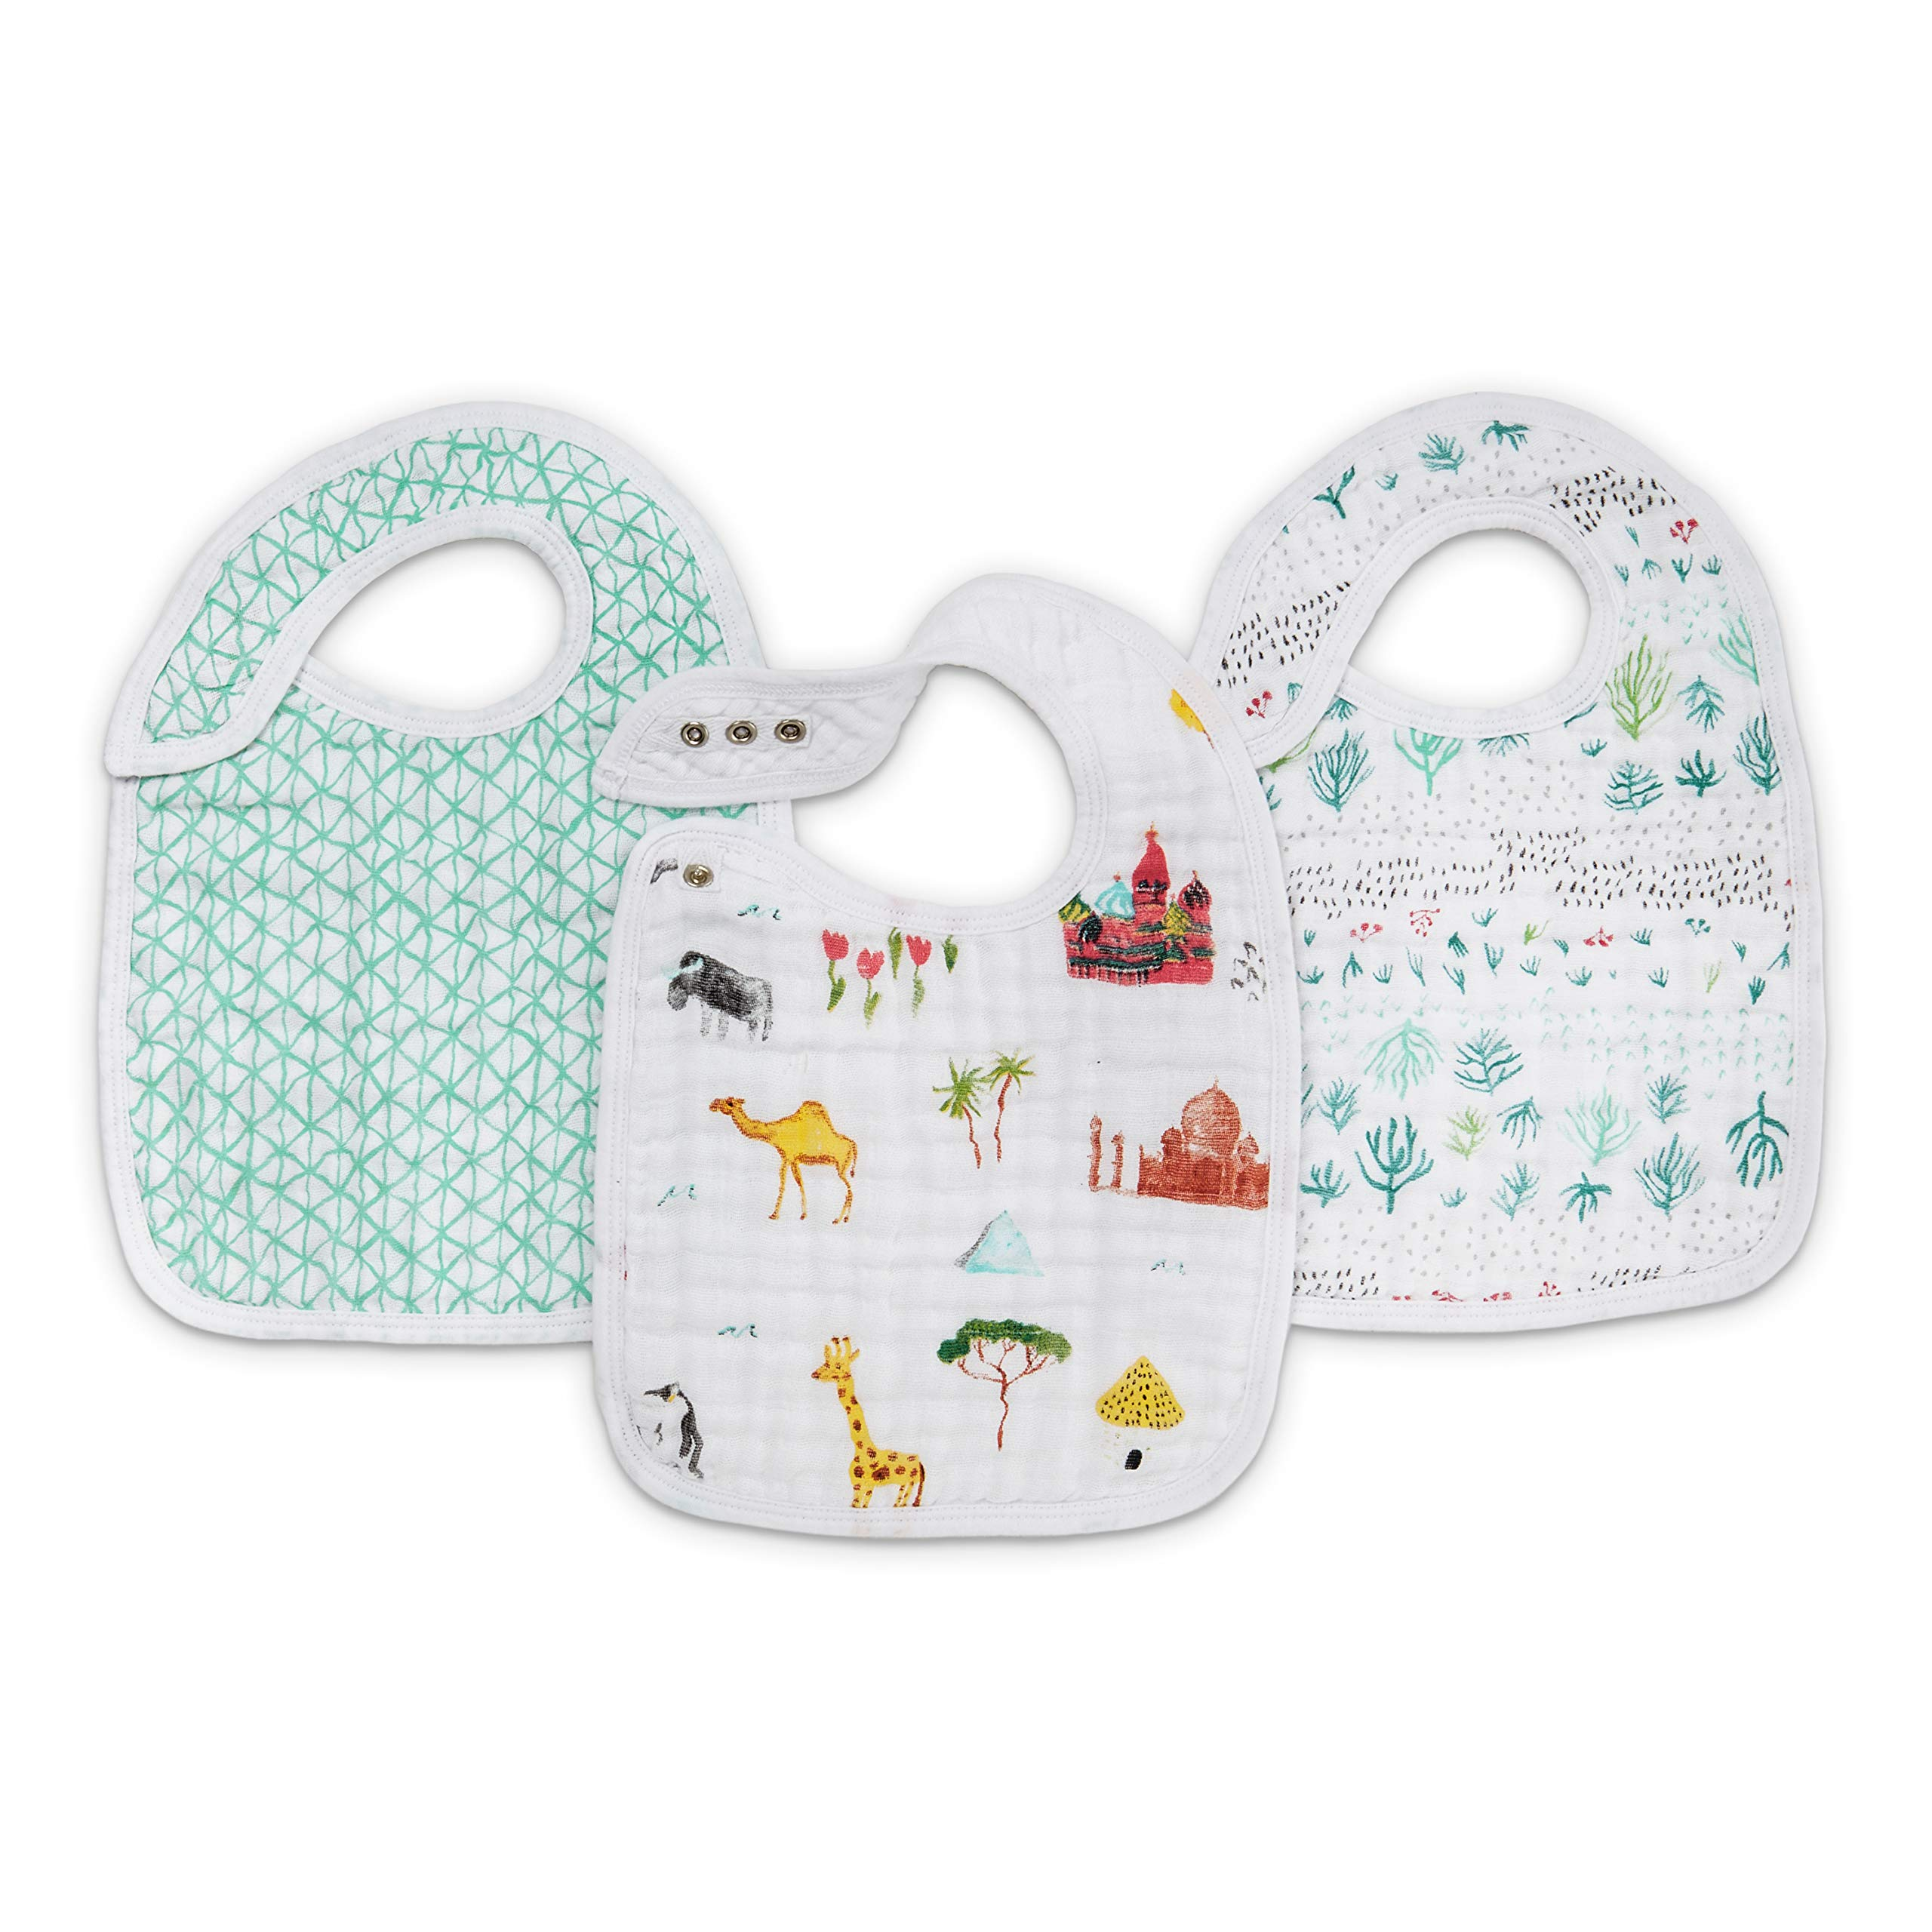 aden + anais Classic Snap Bib, 100% Cotton Muslin, Soft Absorbent 3 Layers, Adjustable, 9'' X 13'', 3 Pack, Around The World